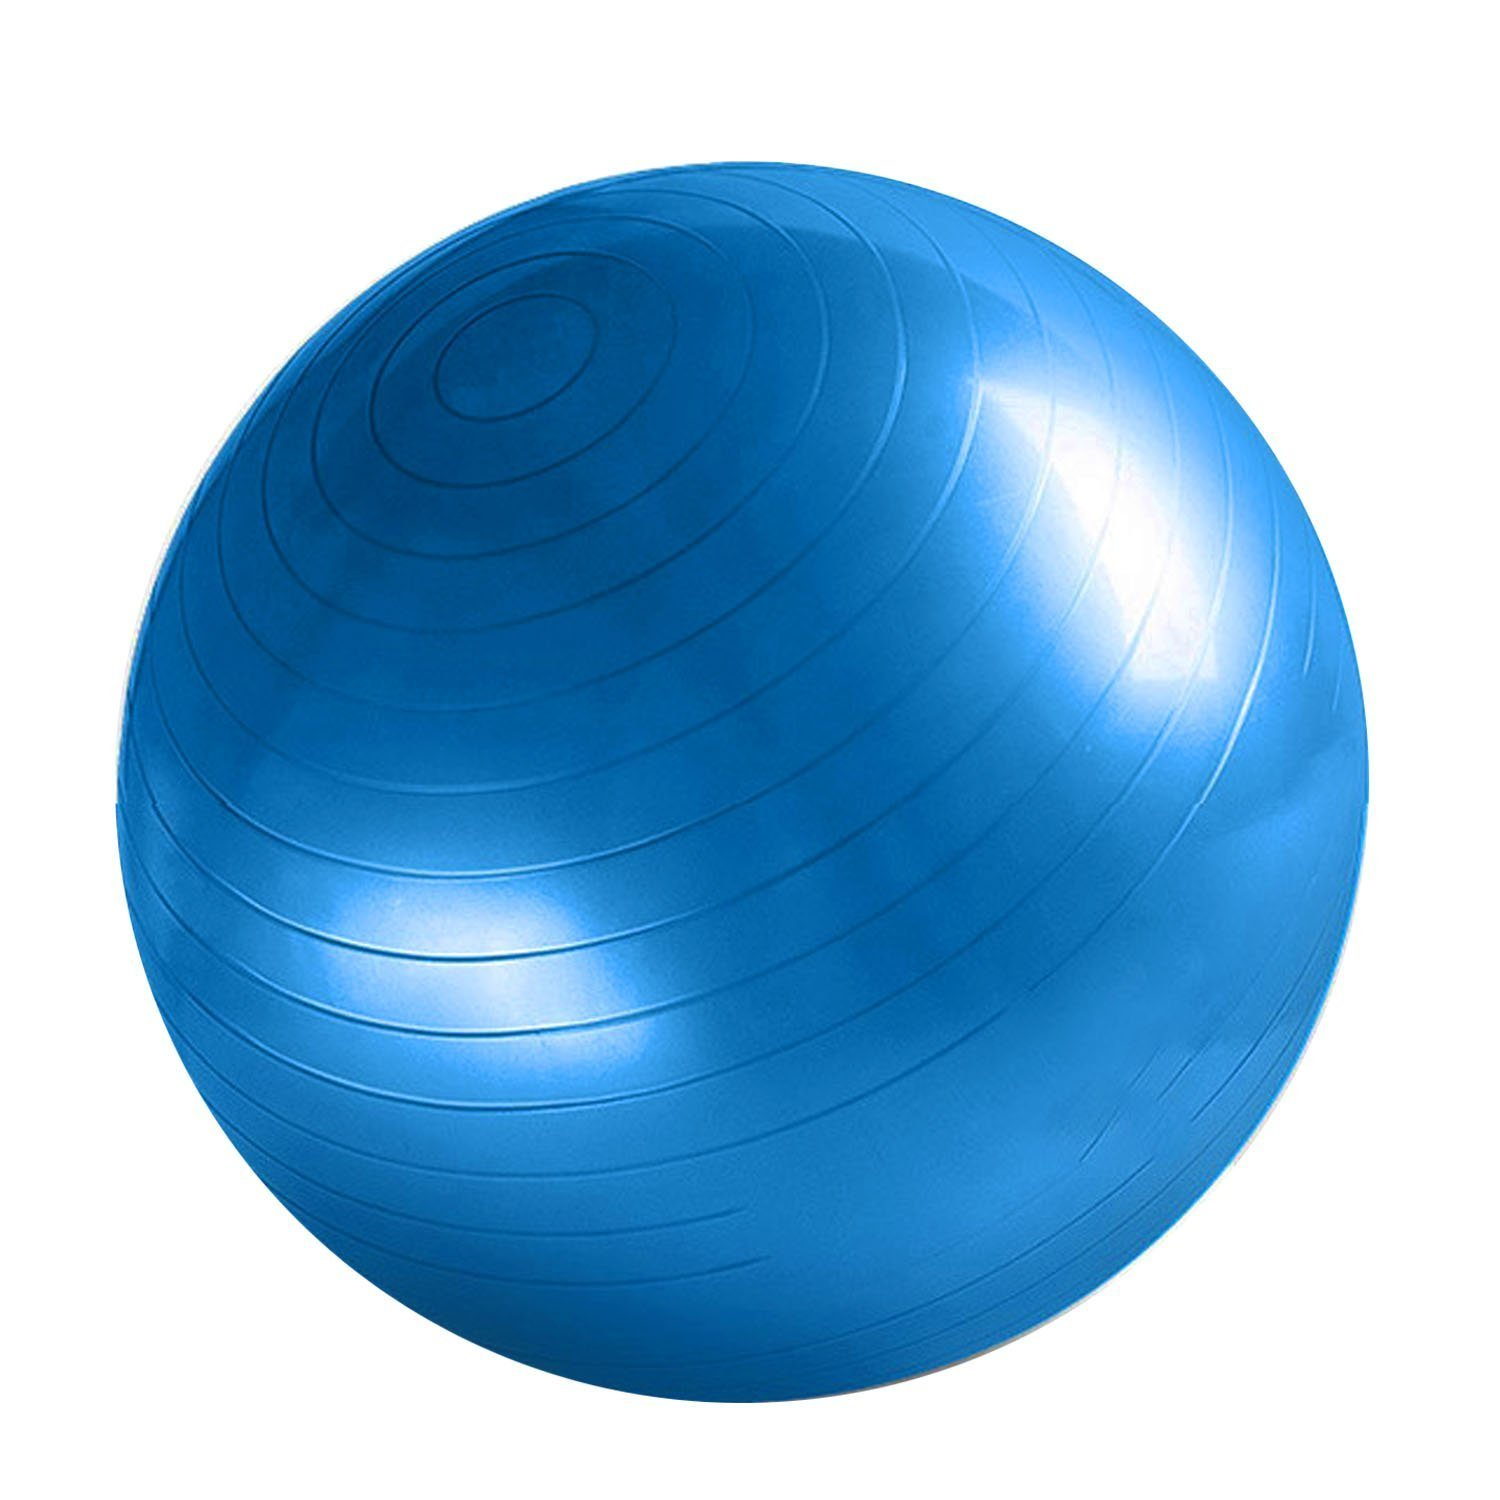 Fitness Ball Comfortable Durable Thickened Explosion-proof Yoga Gym Training Ball Blue